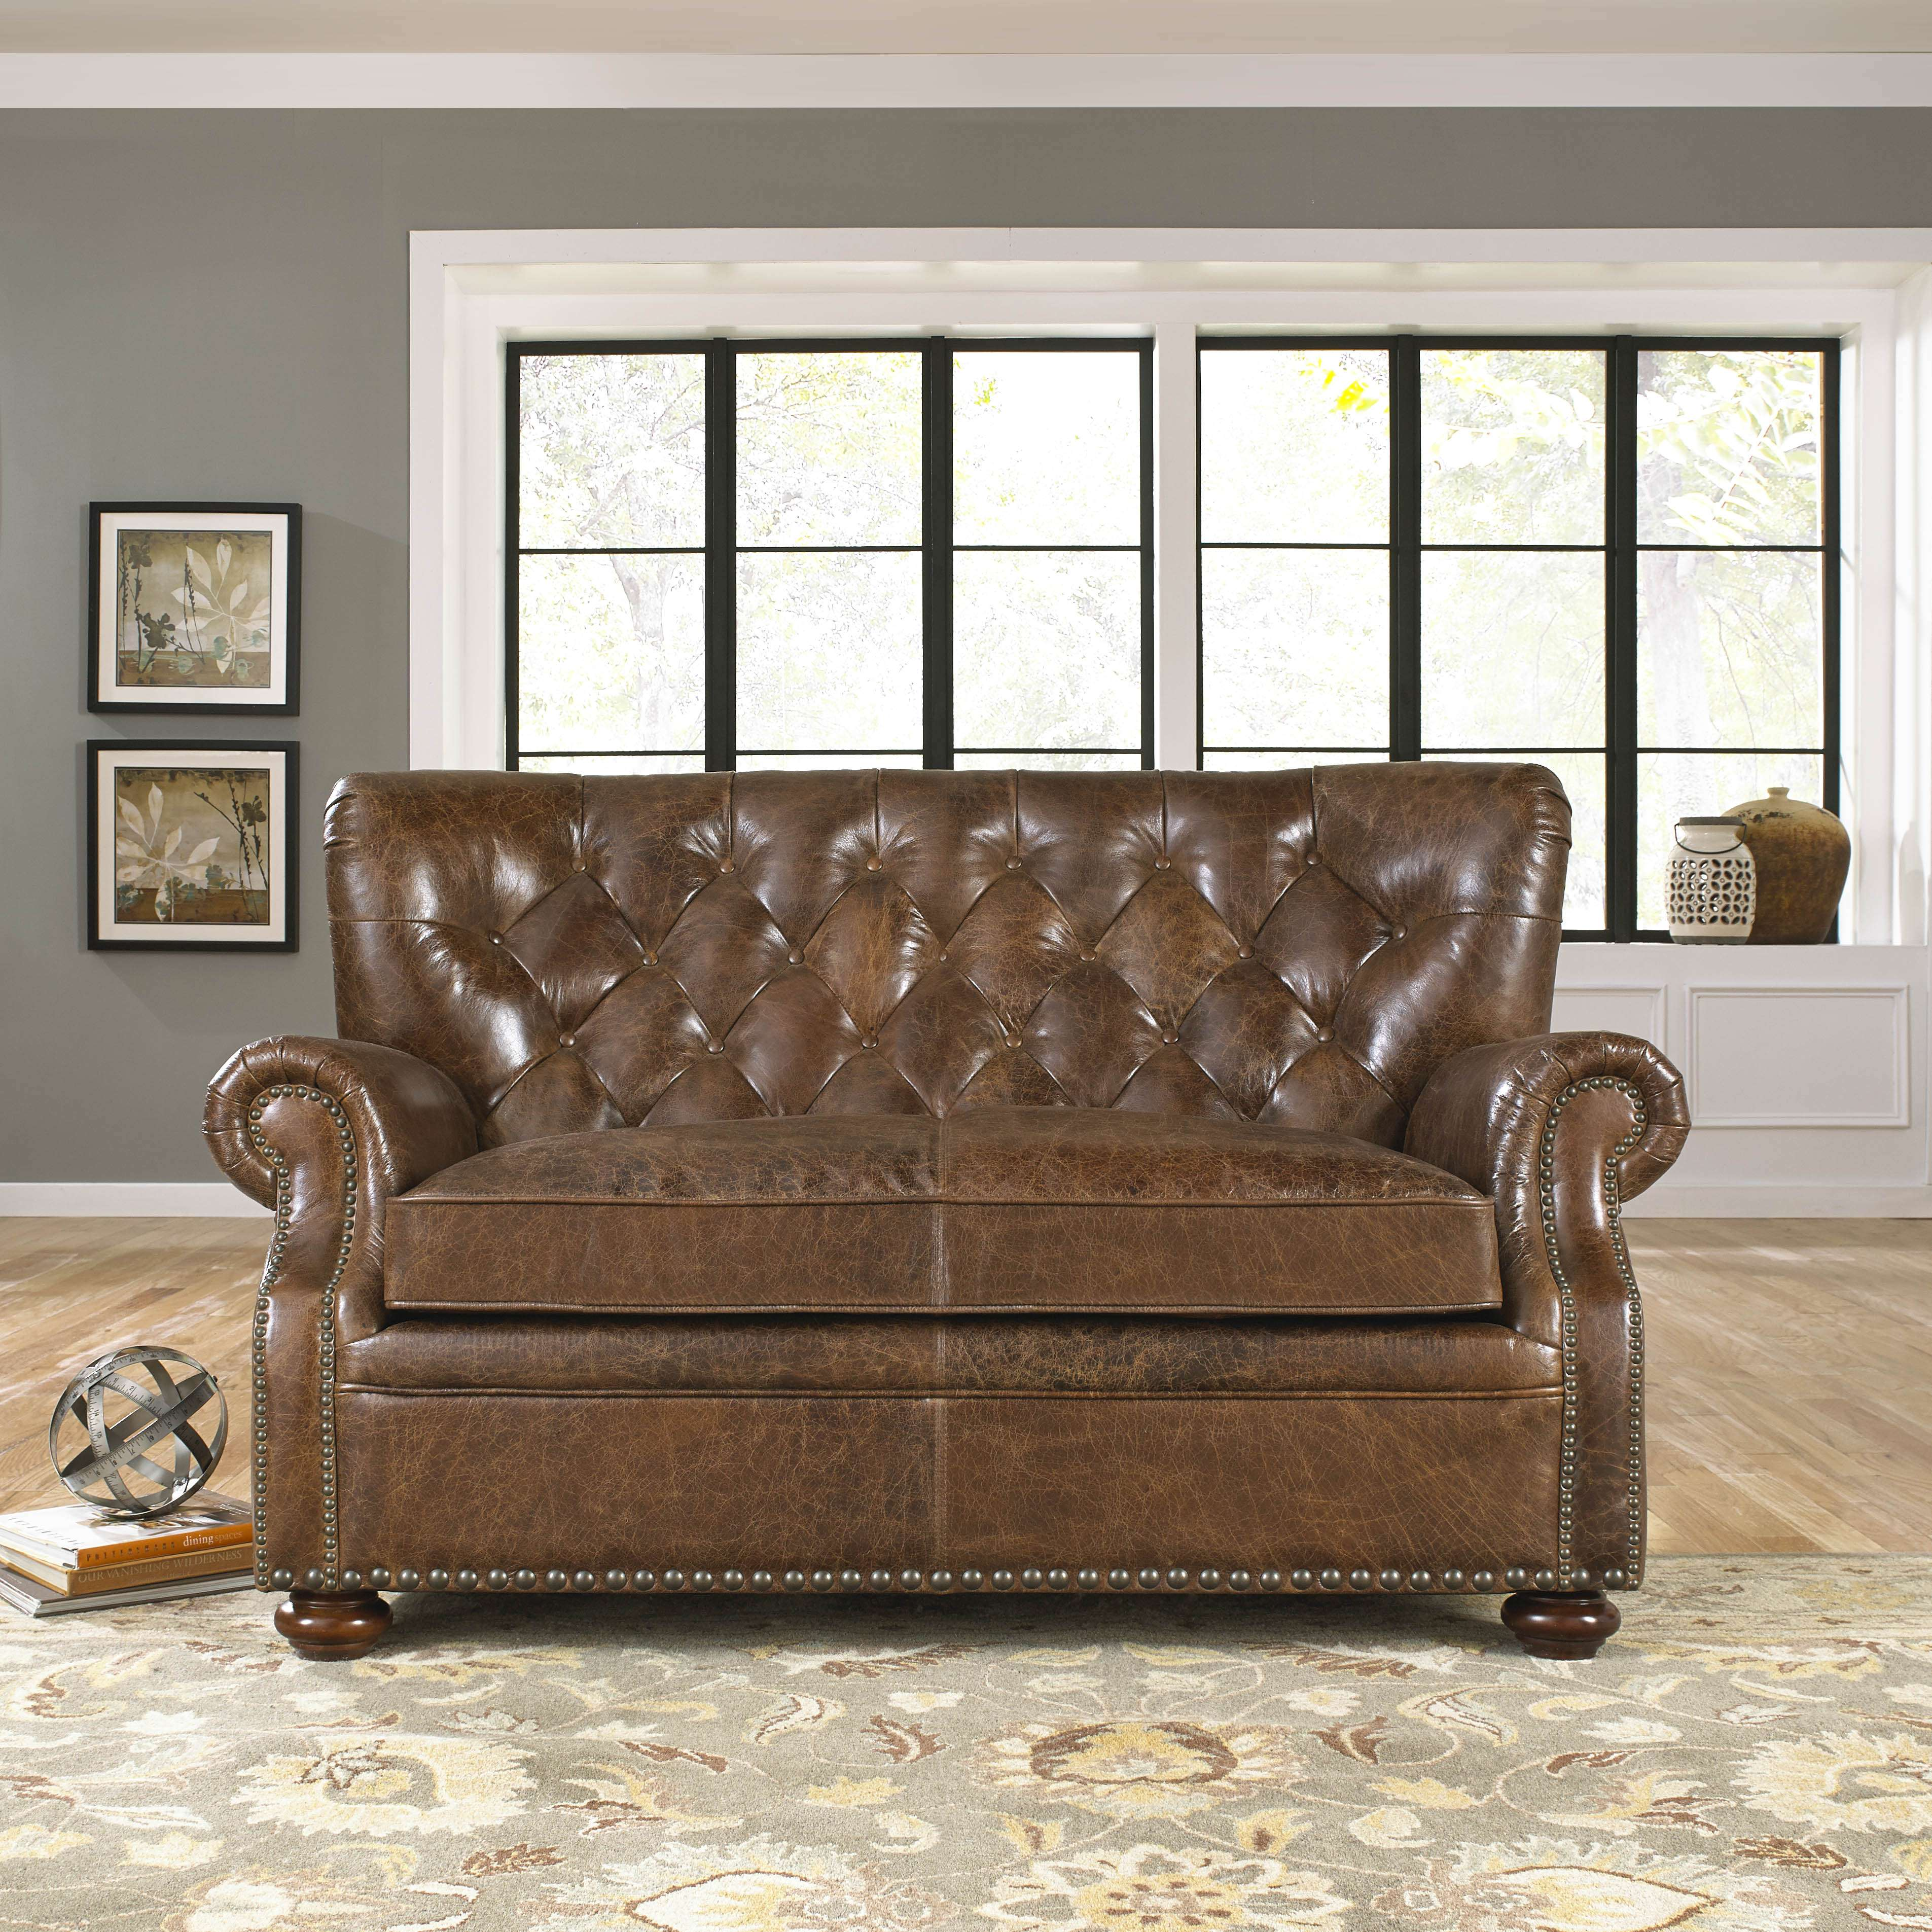 Beau Louis Loveseat In Cocoa Brompton